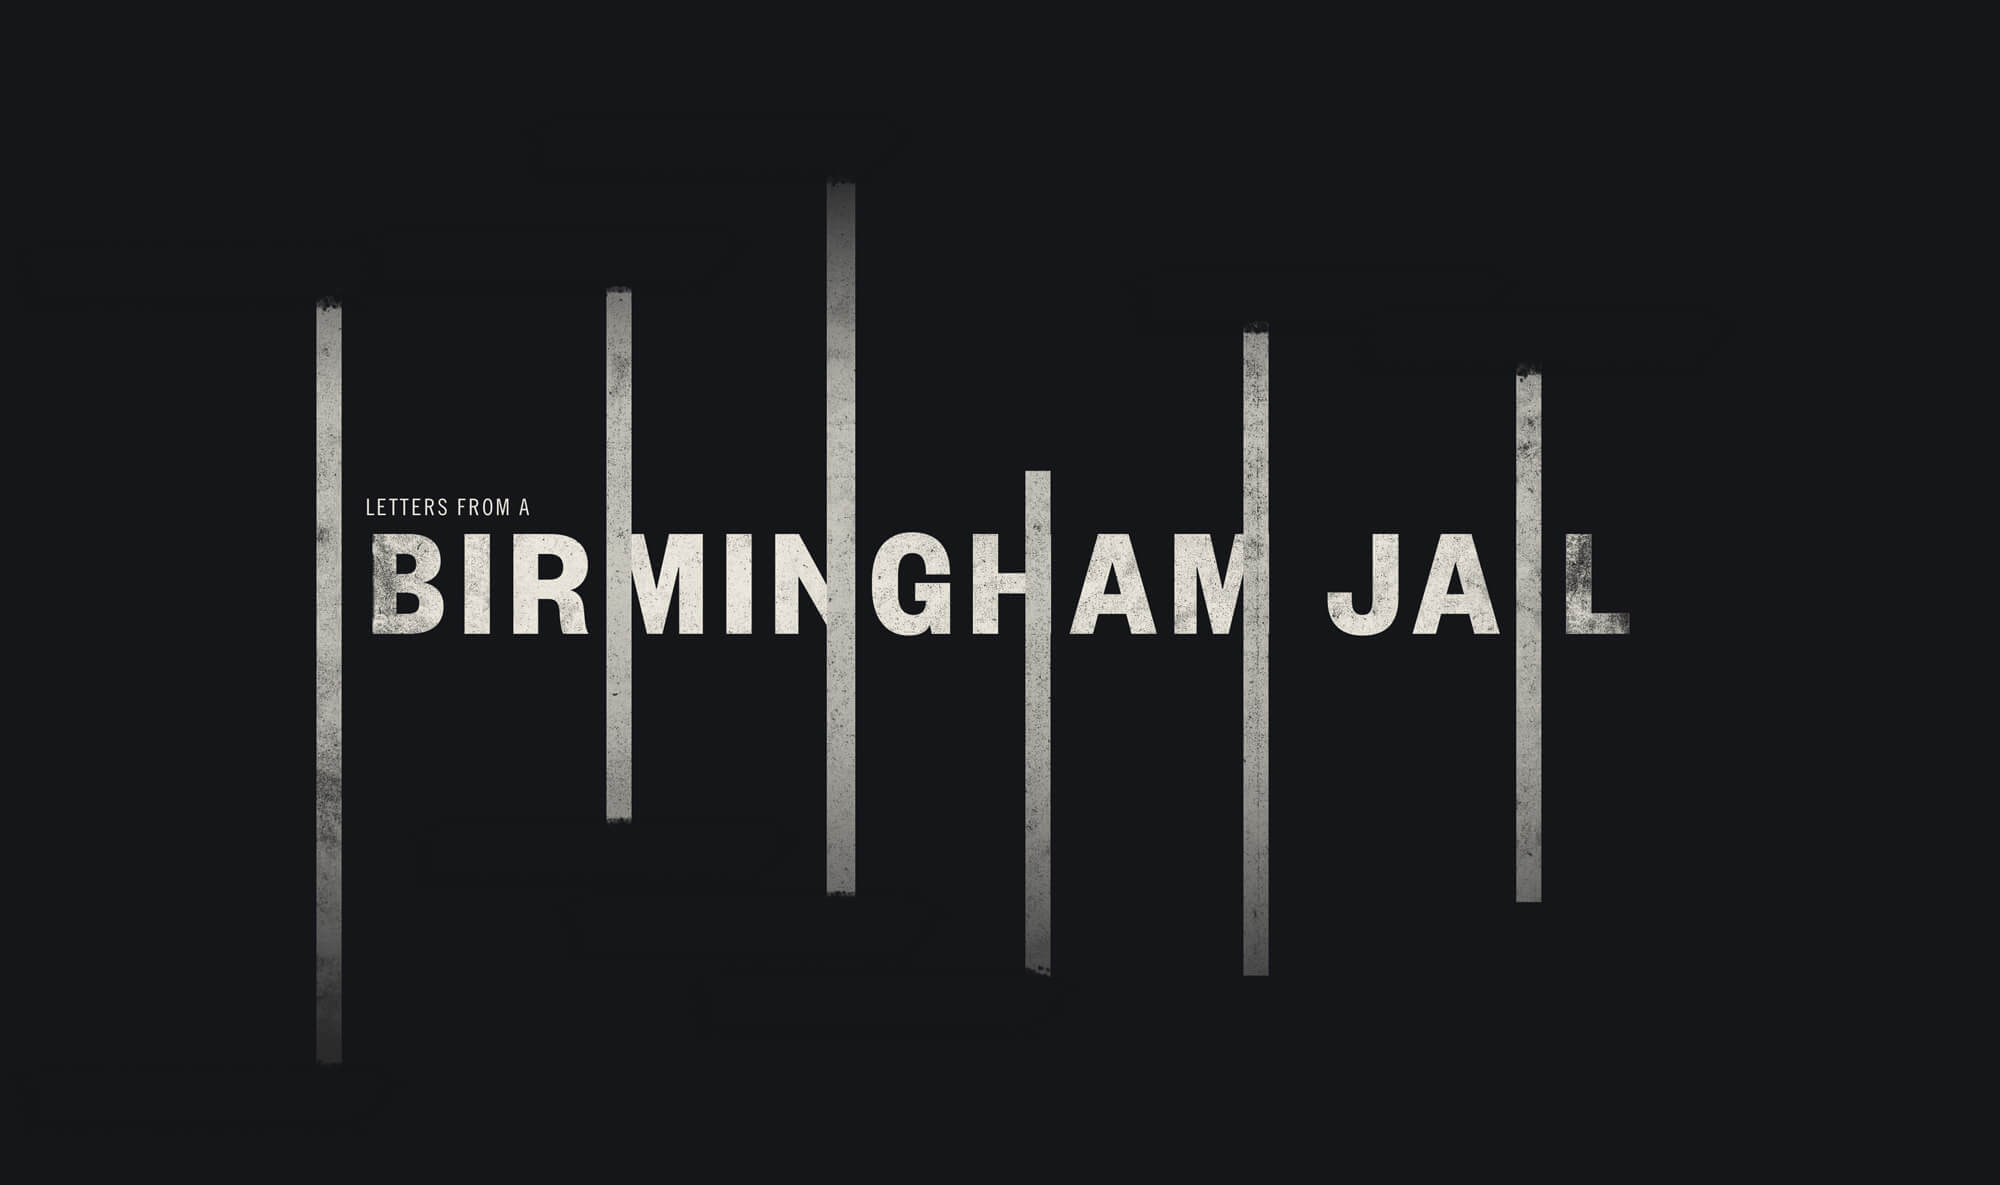 A typographic super for the Birmingham Jail chapter of this site